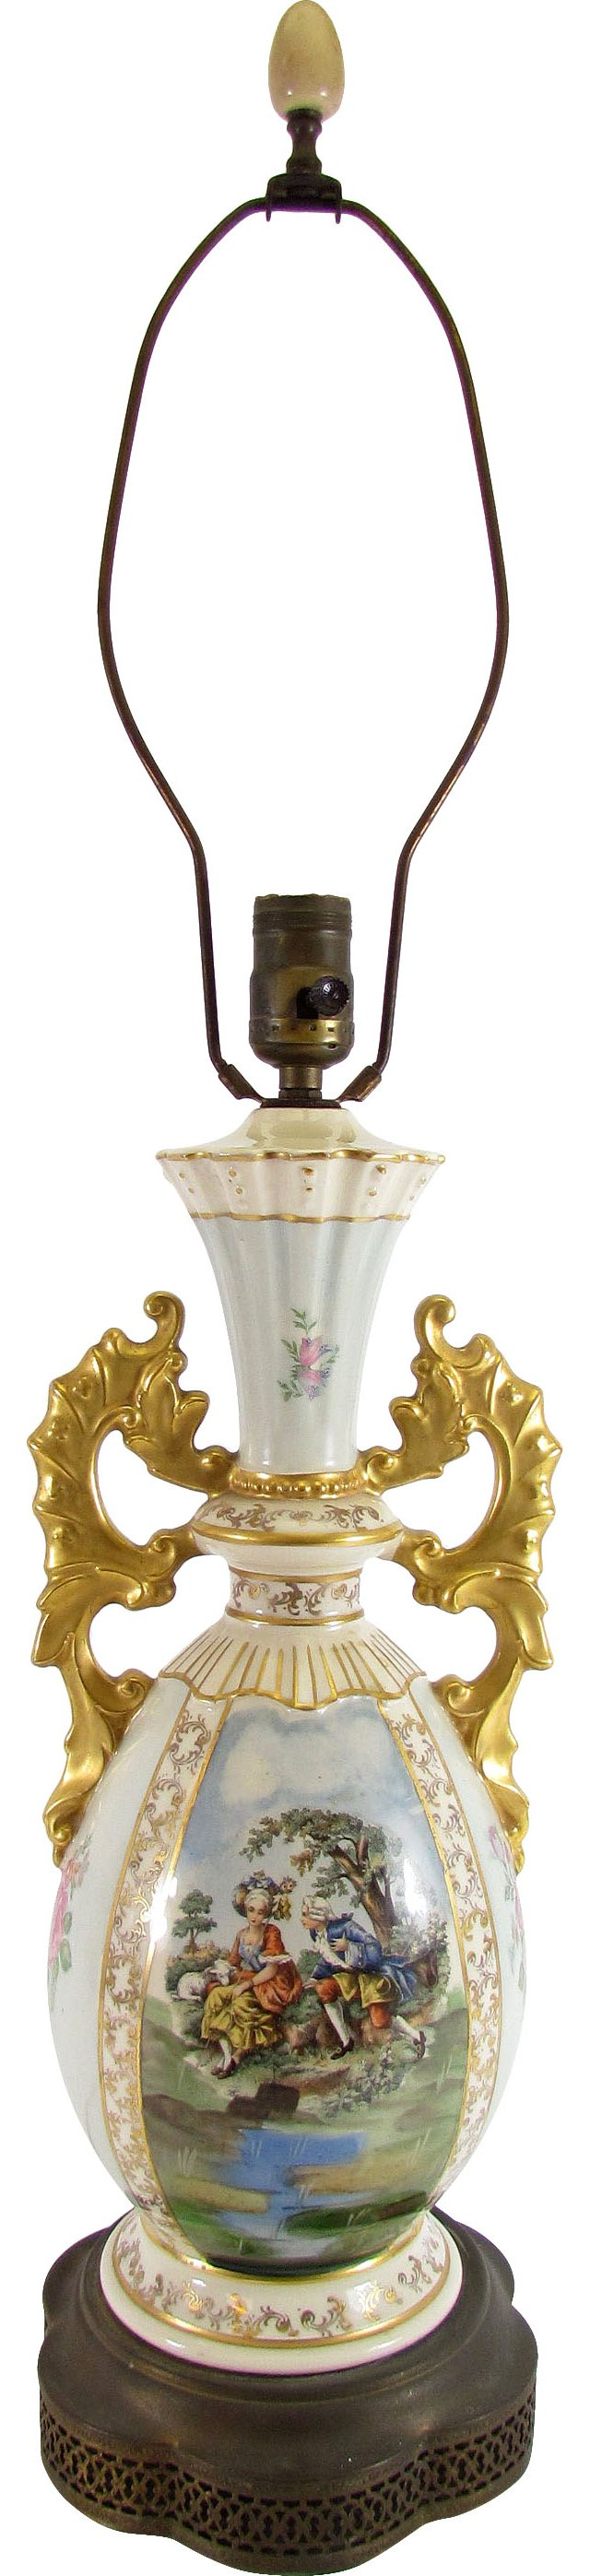 French Sèvres-Style Porcelain Lamp